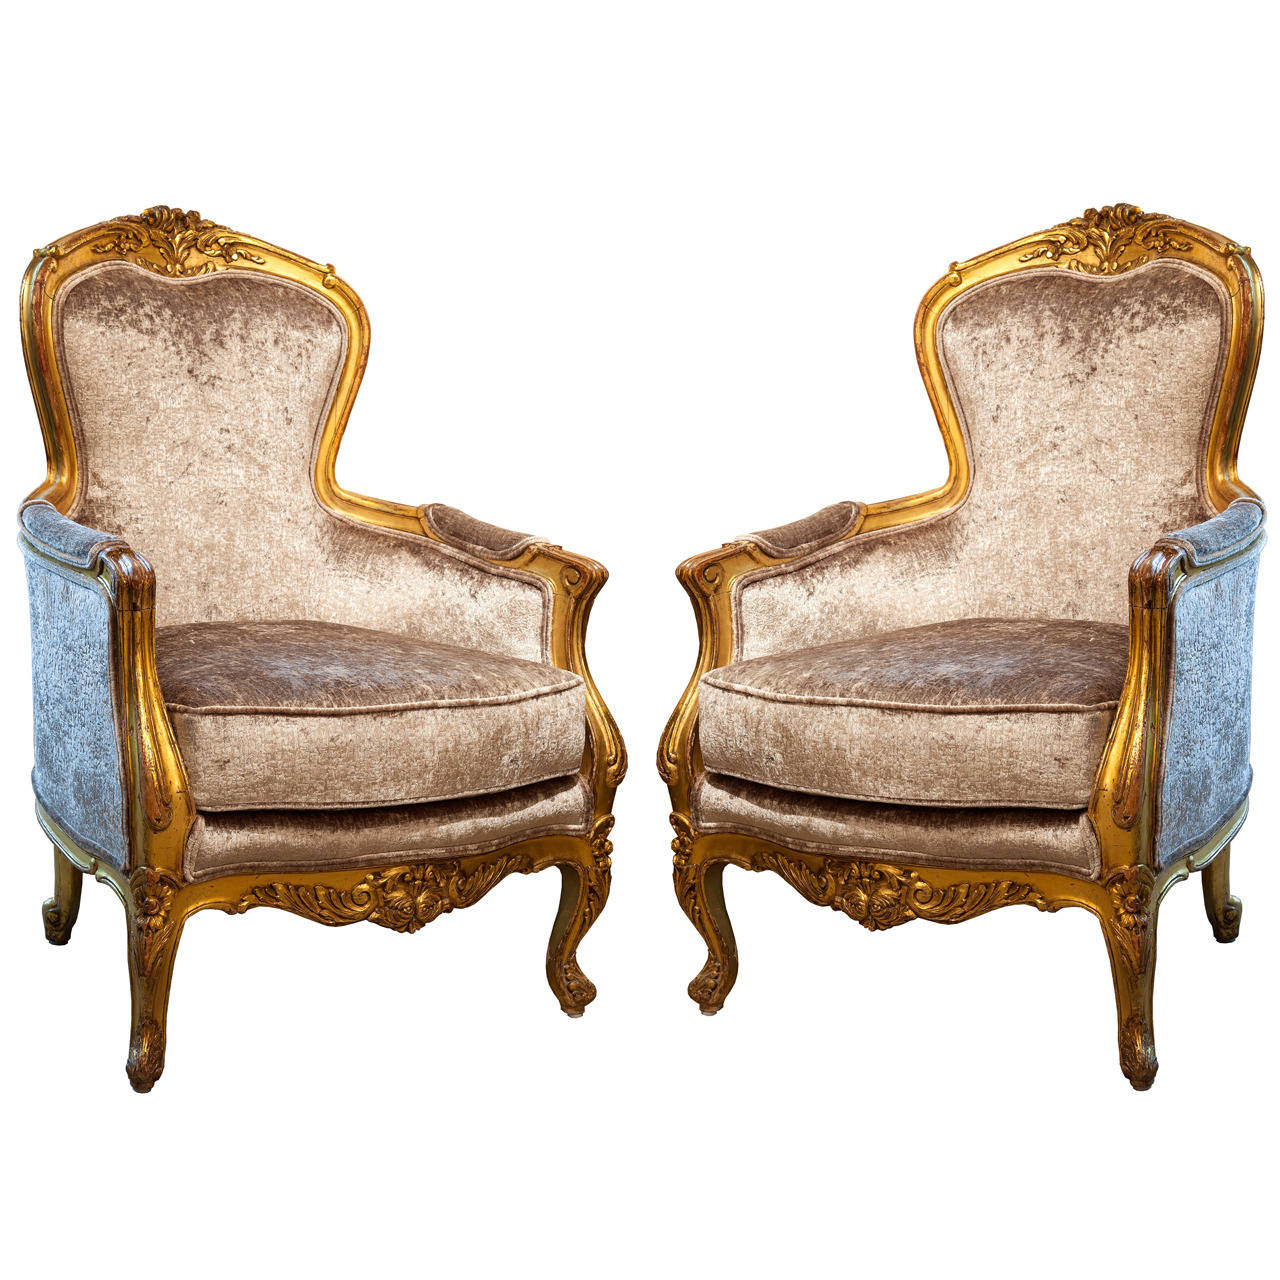 French Wooden Chairs ~ Antique french th c gilt wood bergere chairs for sale at